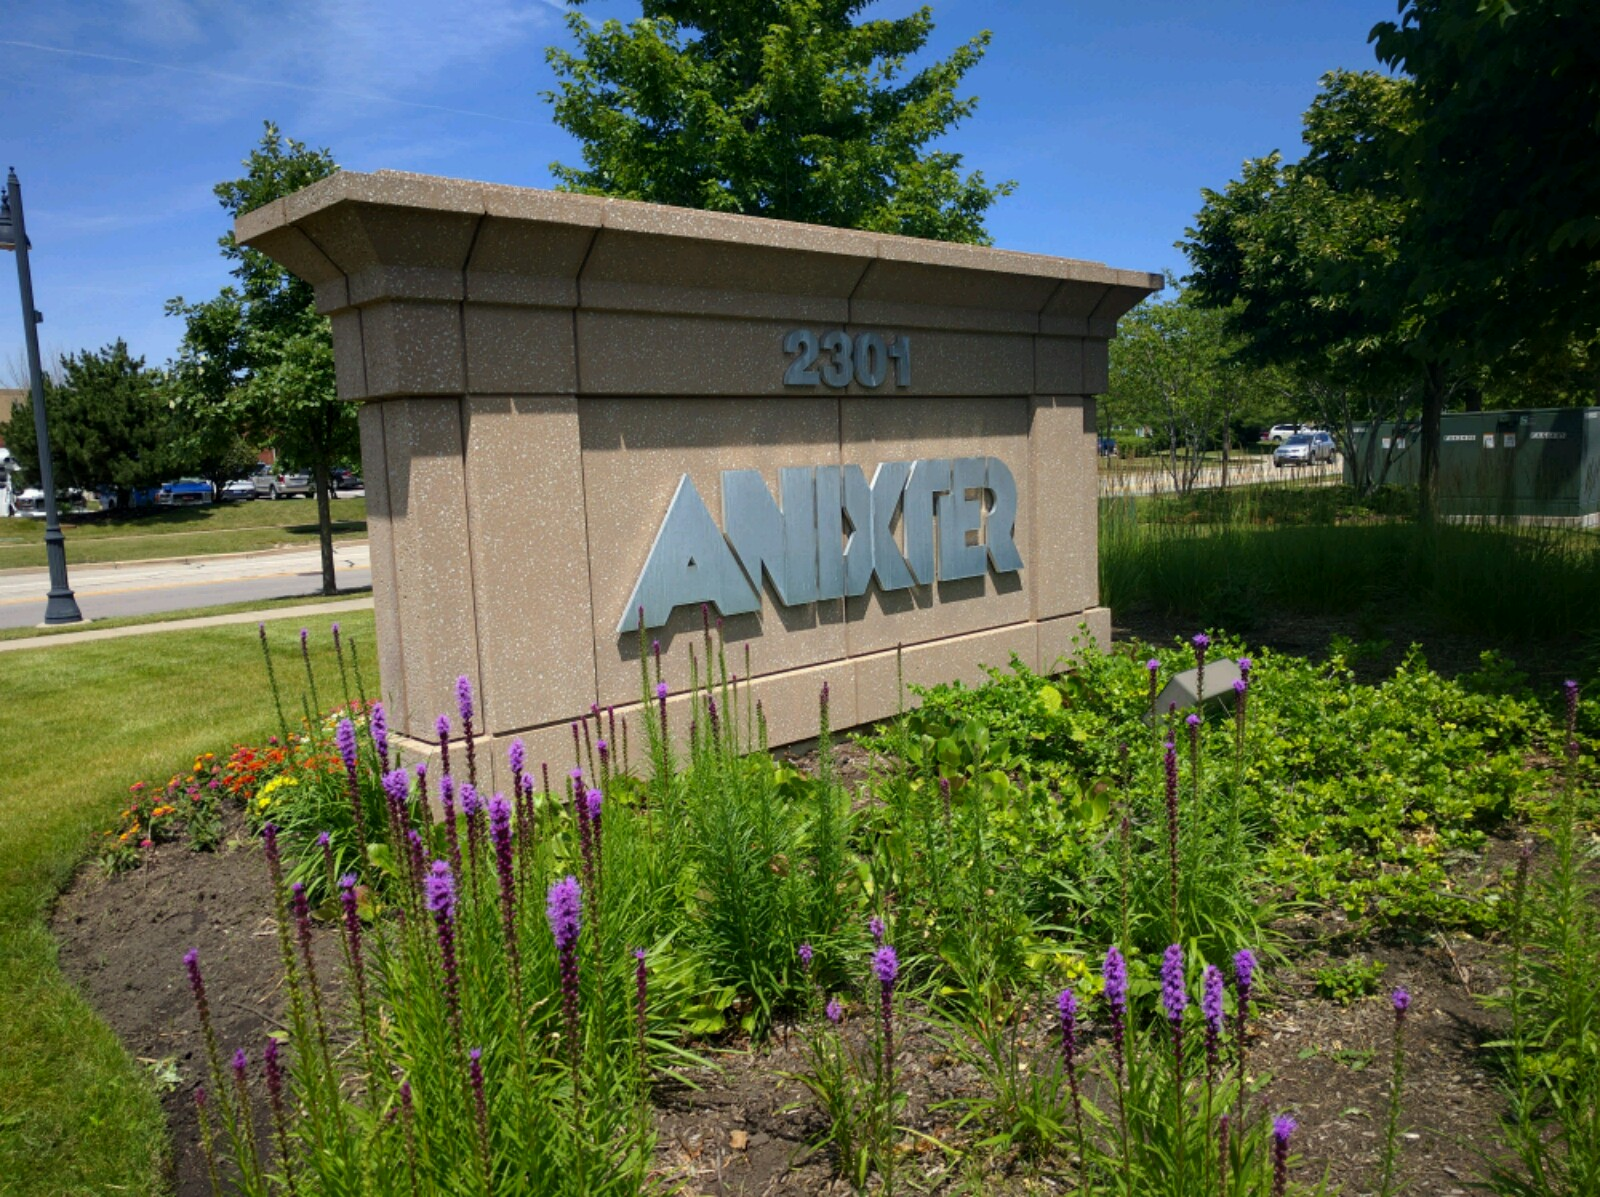 Entrance to Anixter's corporate headquarters in Glenview, Illinois.